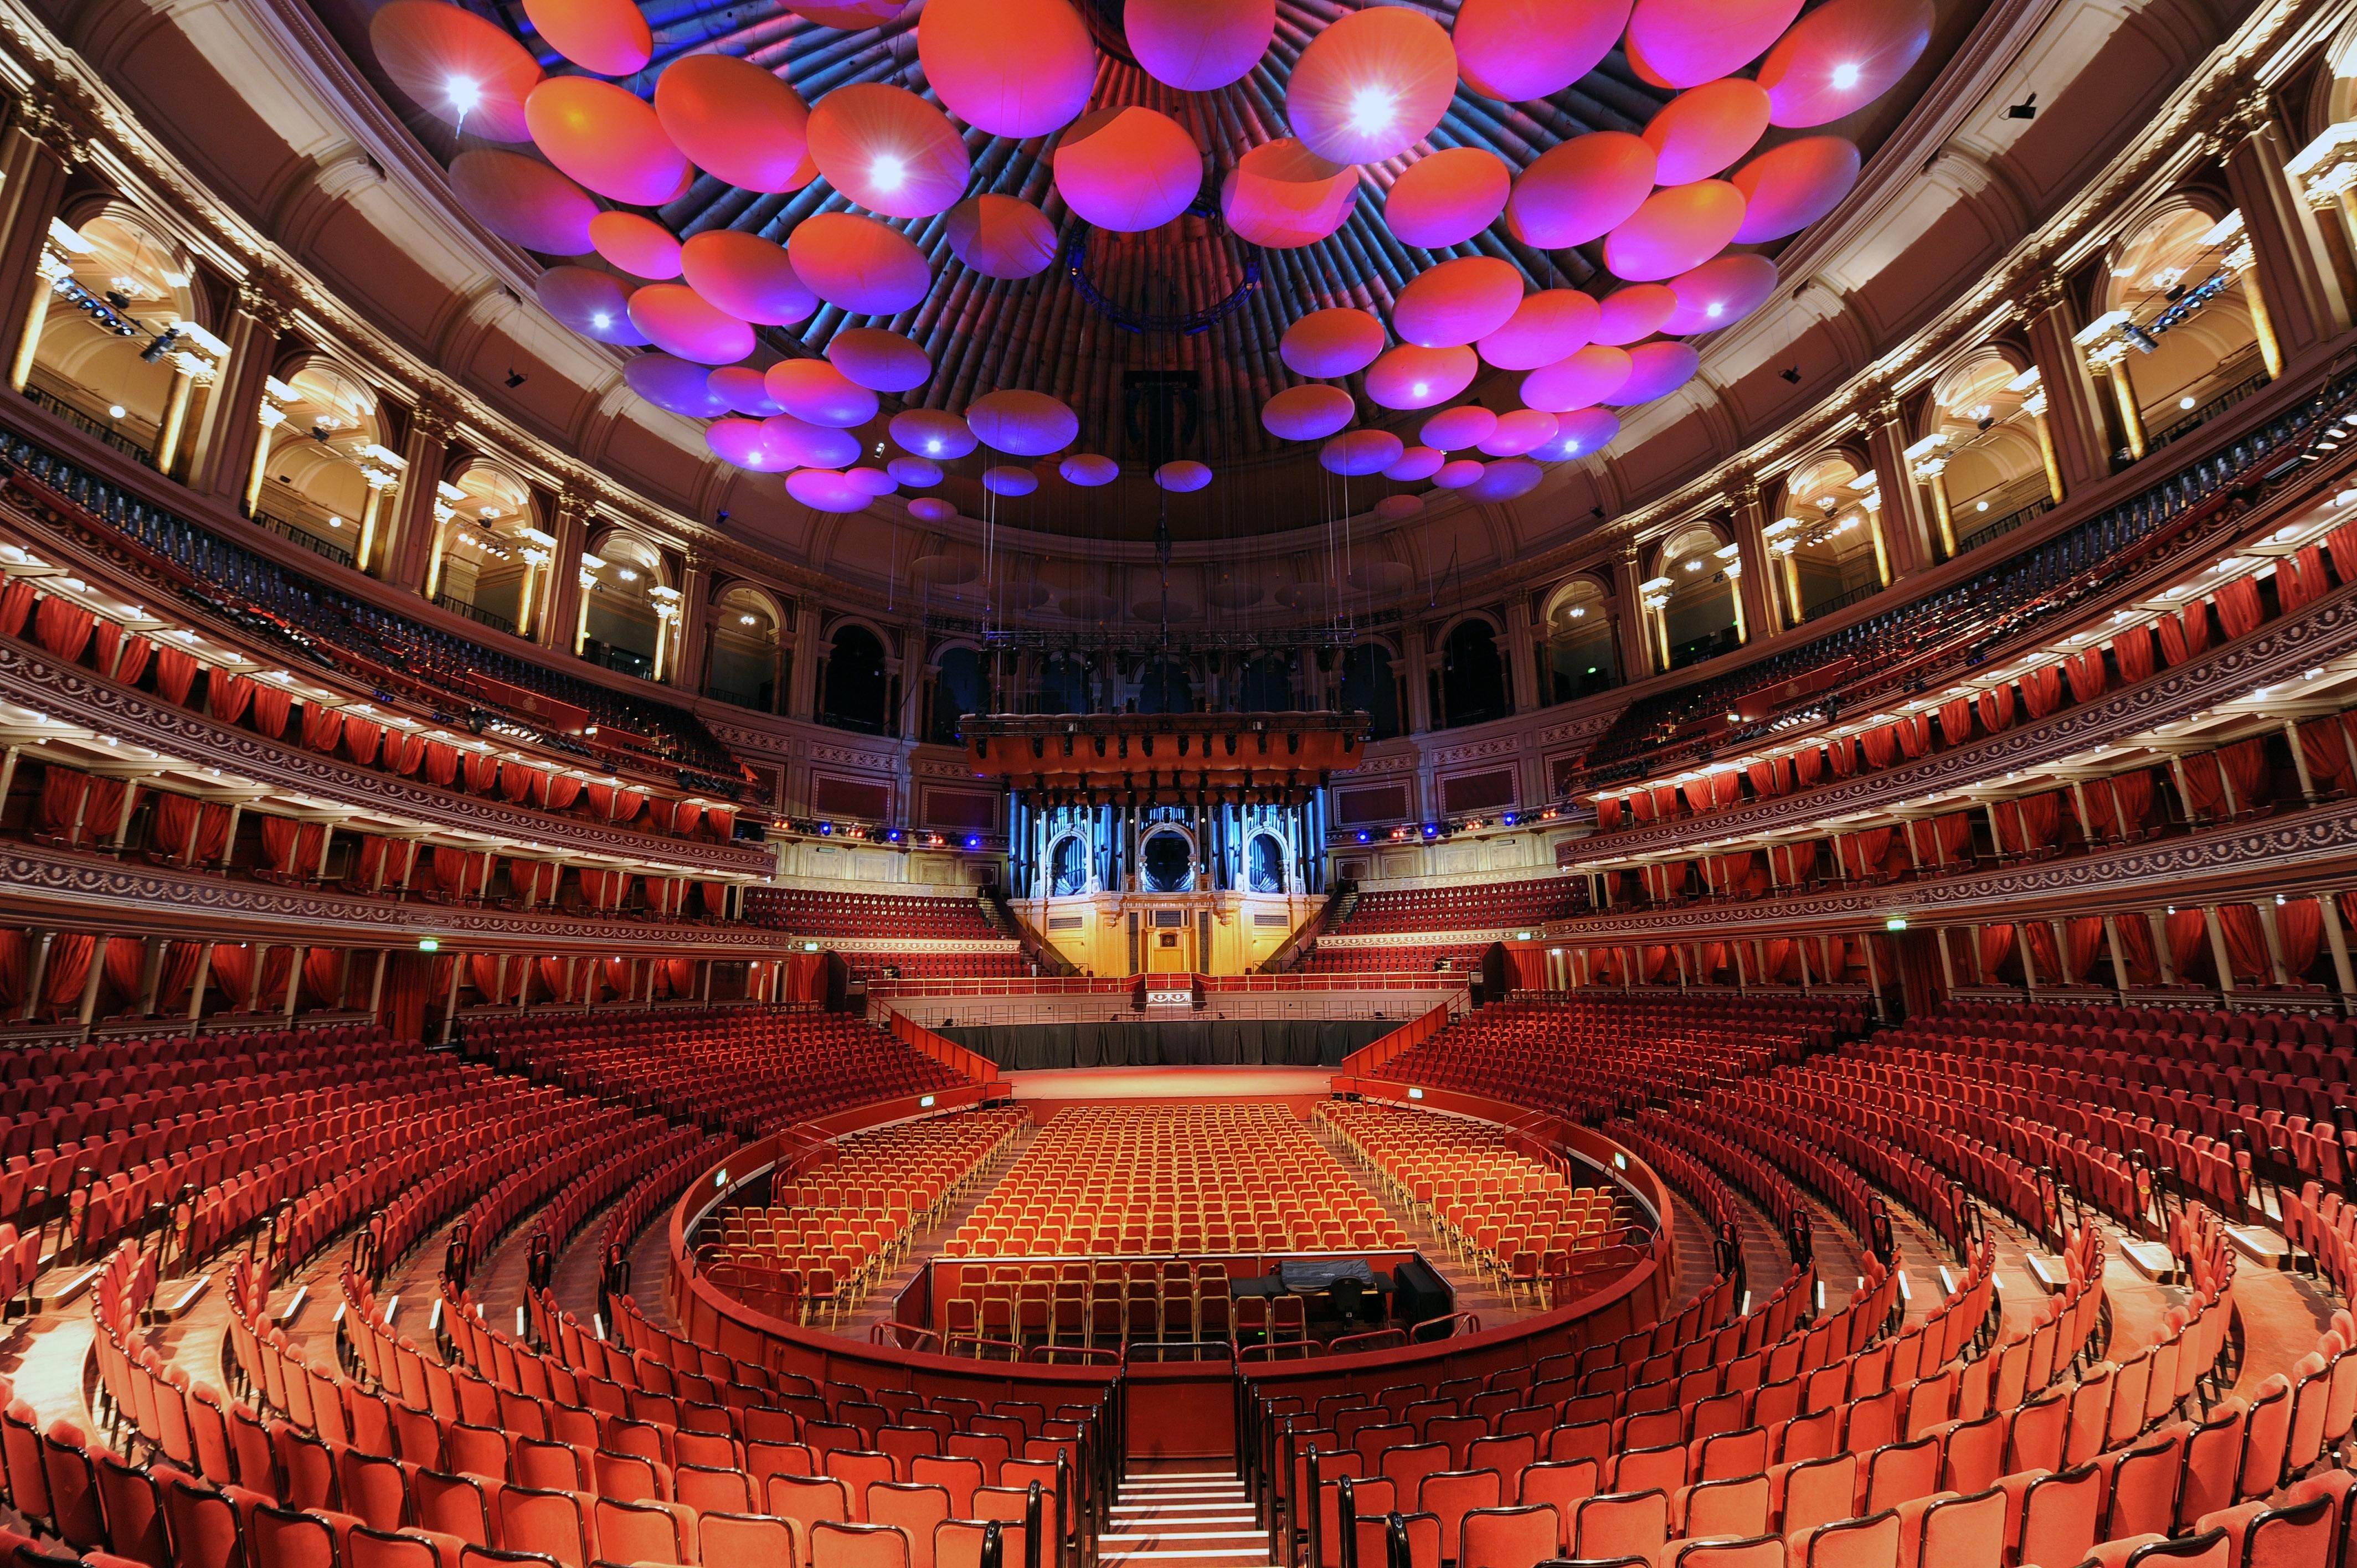 The Royal Albert Hall: A Masterpiece for the 21st Century